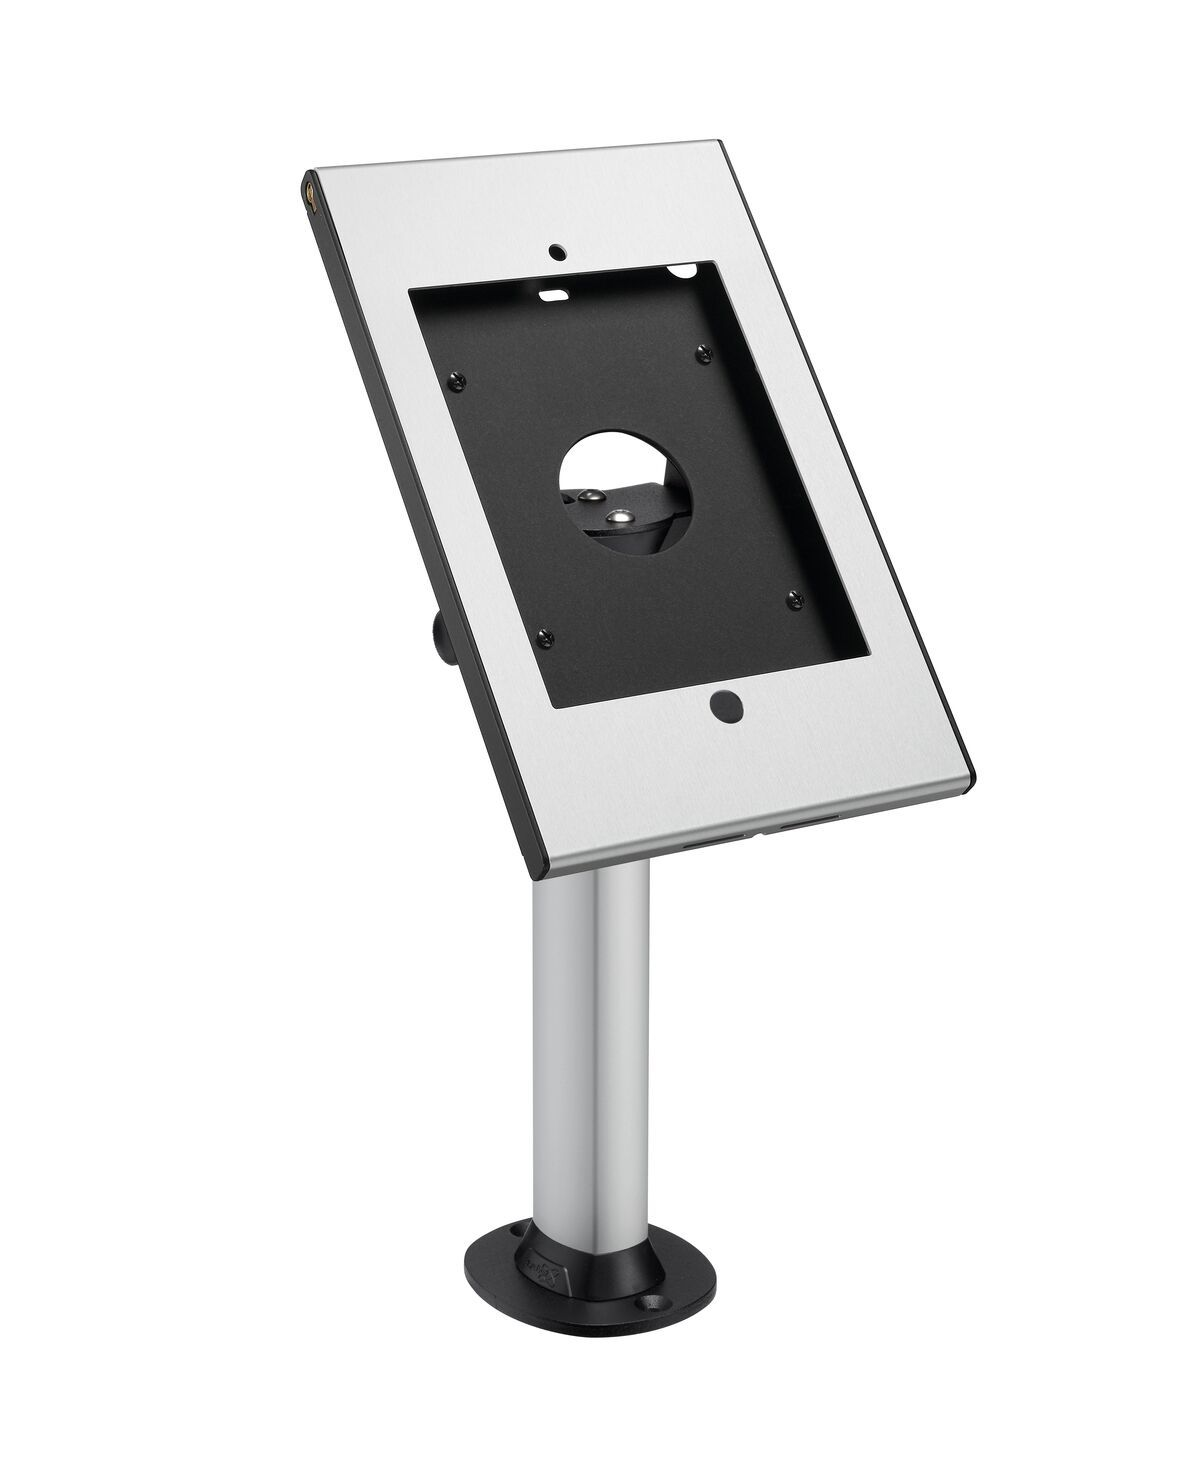 Vogel's PTS 1225 TabLock für iPad mini (2019) - Application